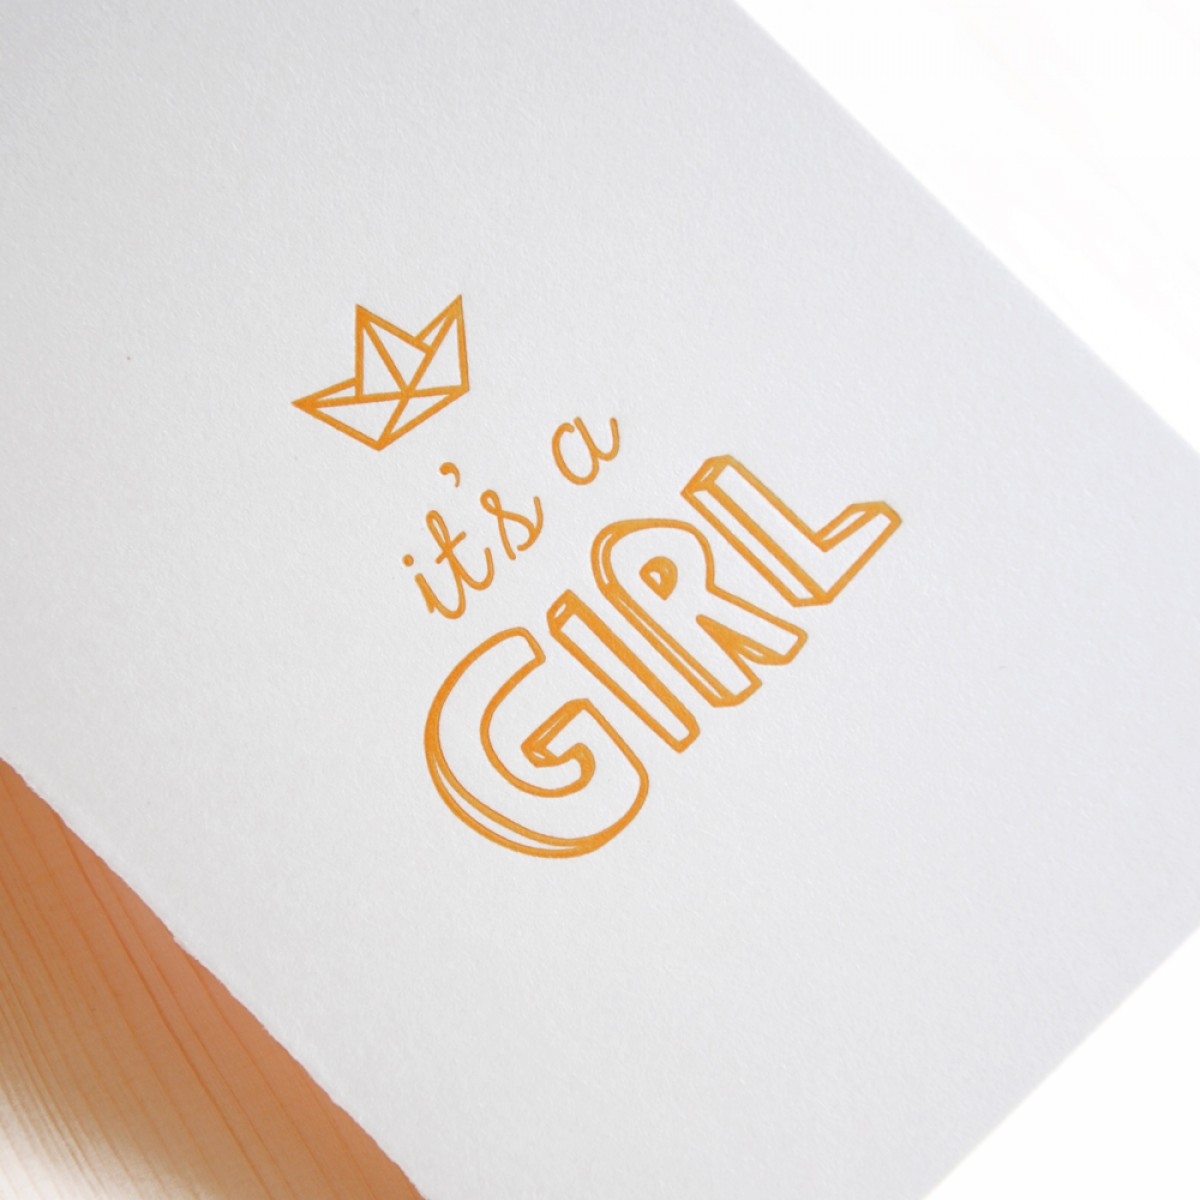 finicrafts It's a Girl Letterpress-Klappkarte mit Umschlag